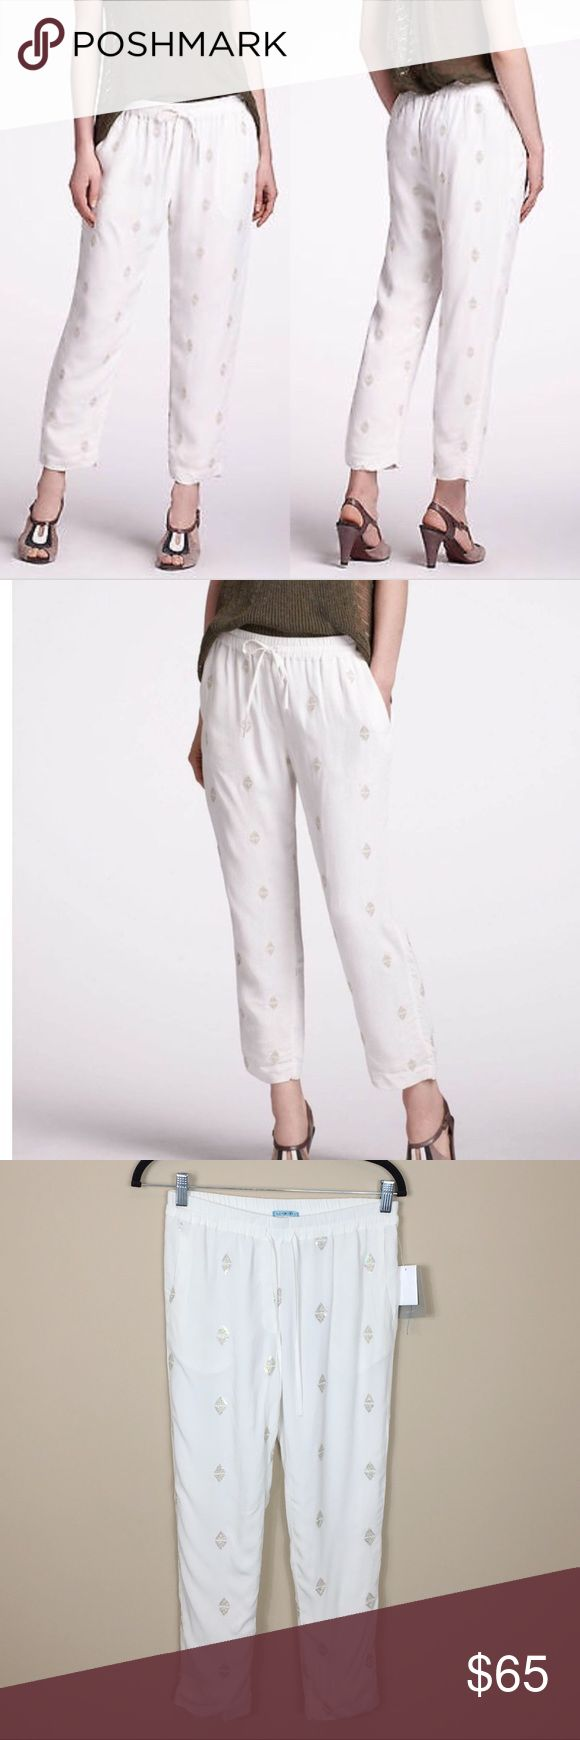 Anthropologie Leifnotes Ivory Sequin Jogger Pants NWT. Anthropologie Leifnotes Ivory Sequin Jogger Pants. Pointed Cressida pants. Ivory. Size 0. So cute! No modeling/trades. Anthropologie Pants Track Pants & Joggers